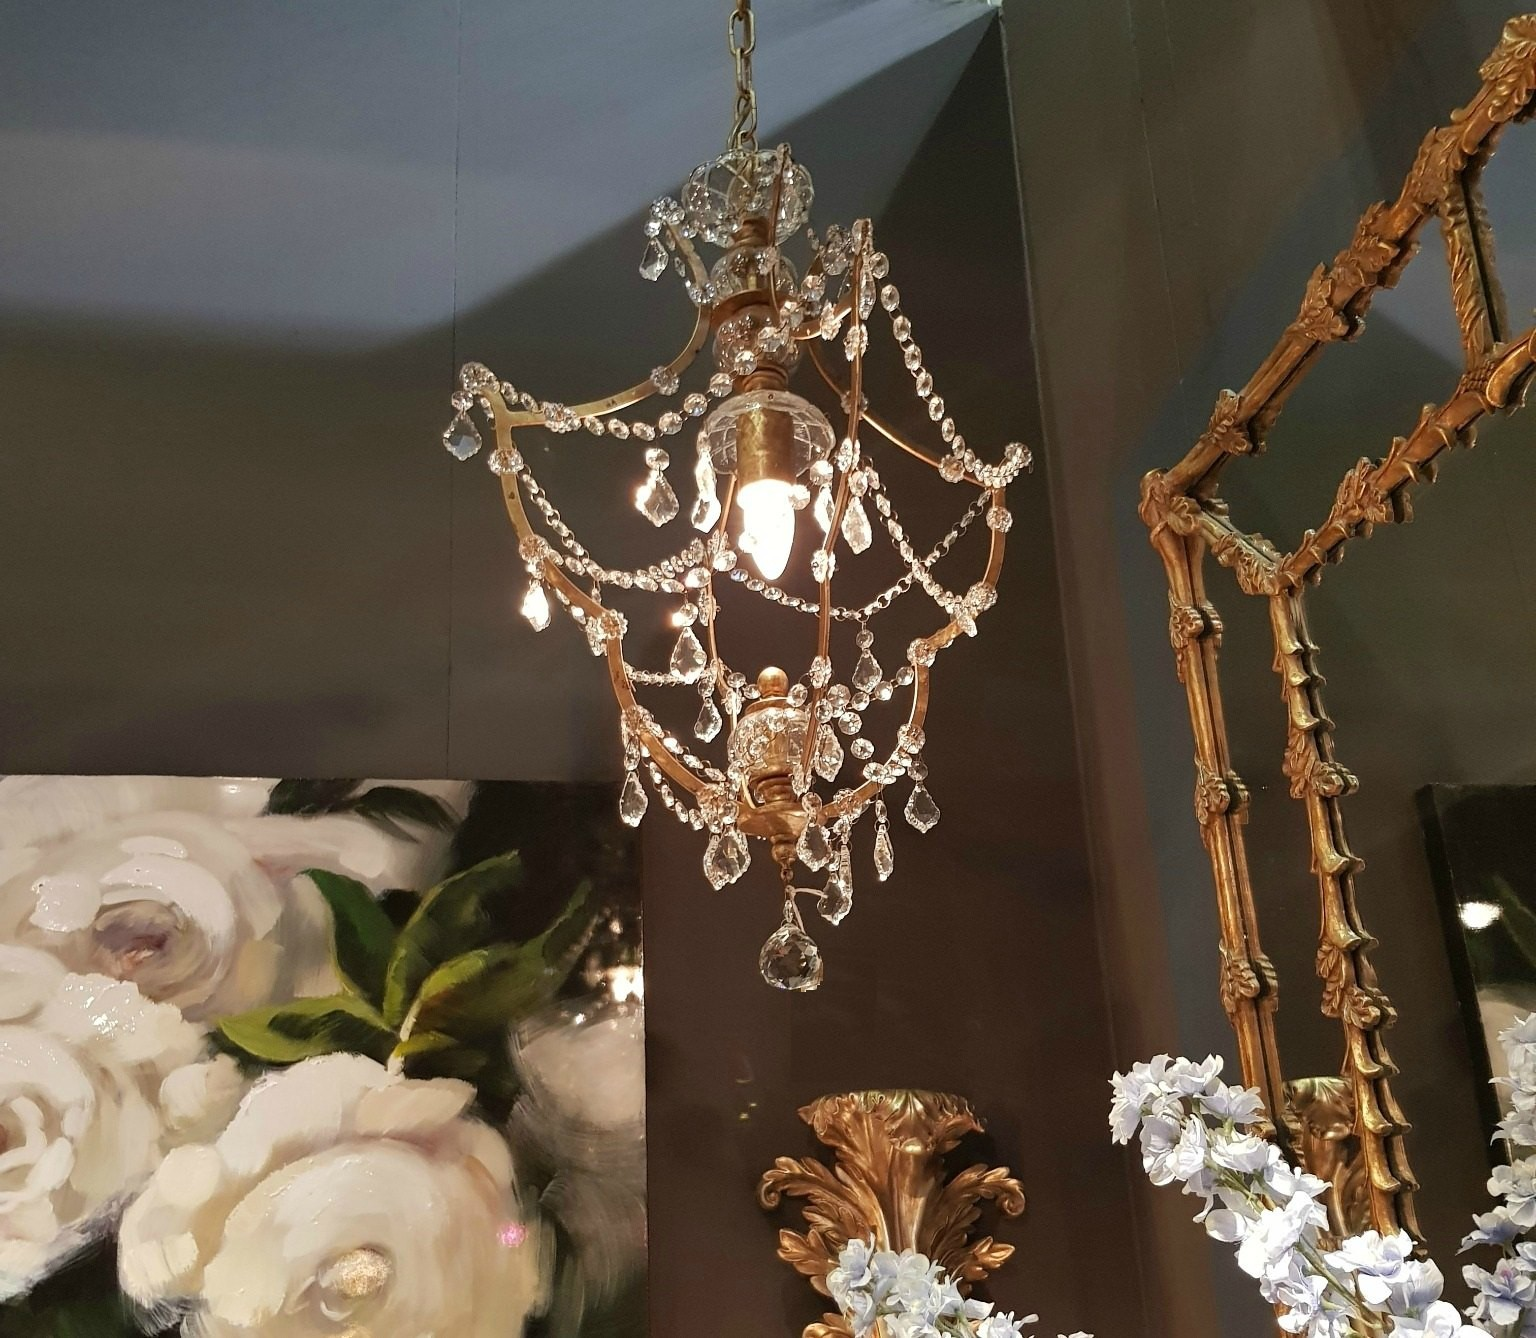 Small giselle chandelier furniture la maison chic luxury interiors giselle chandelier uk aloadofball Gallery